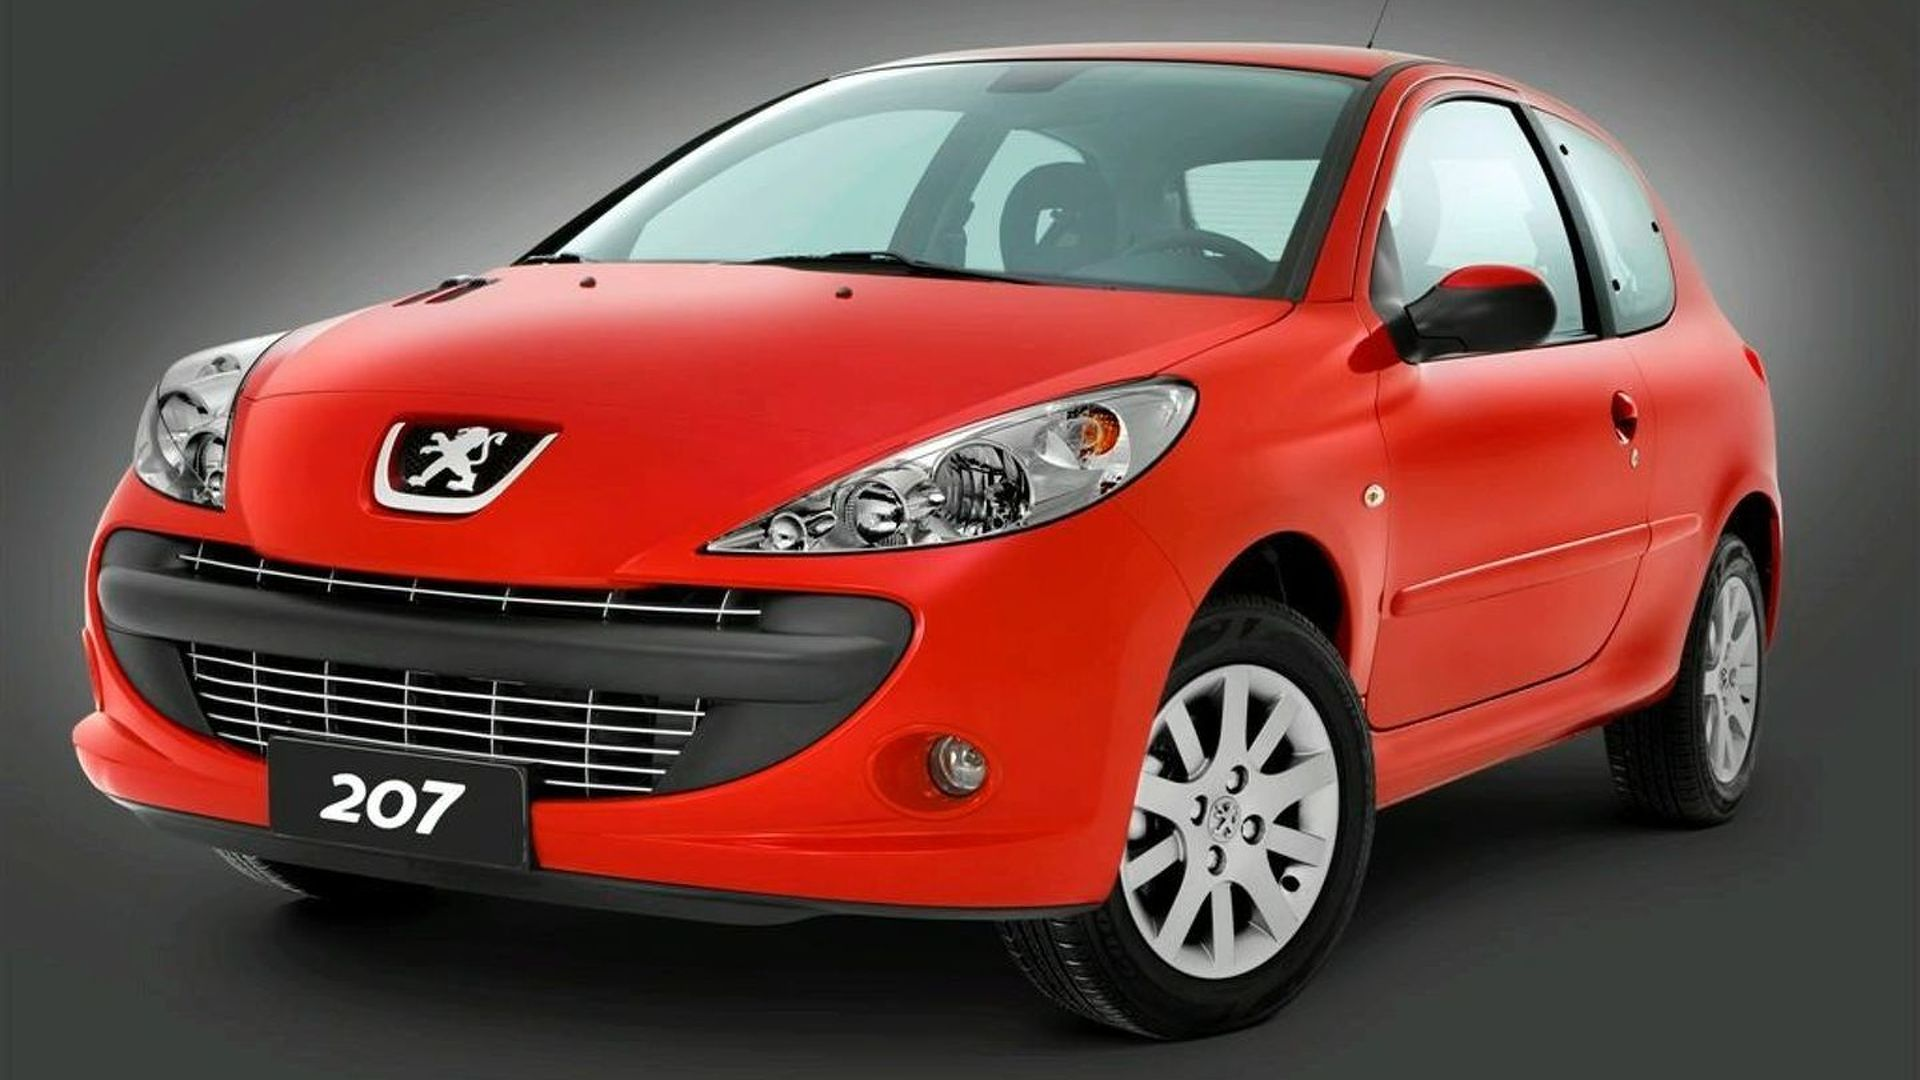 Prix 207 Occasion Peugeot 207 That S What This 206 Is Called In Brazil